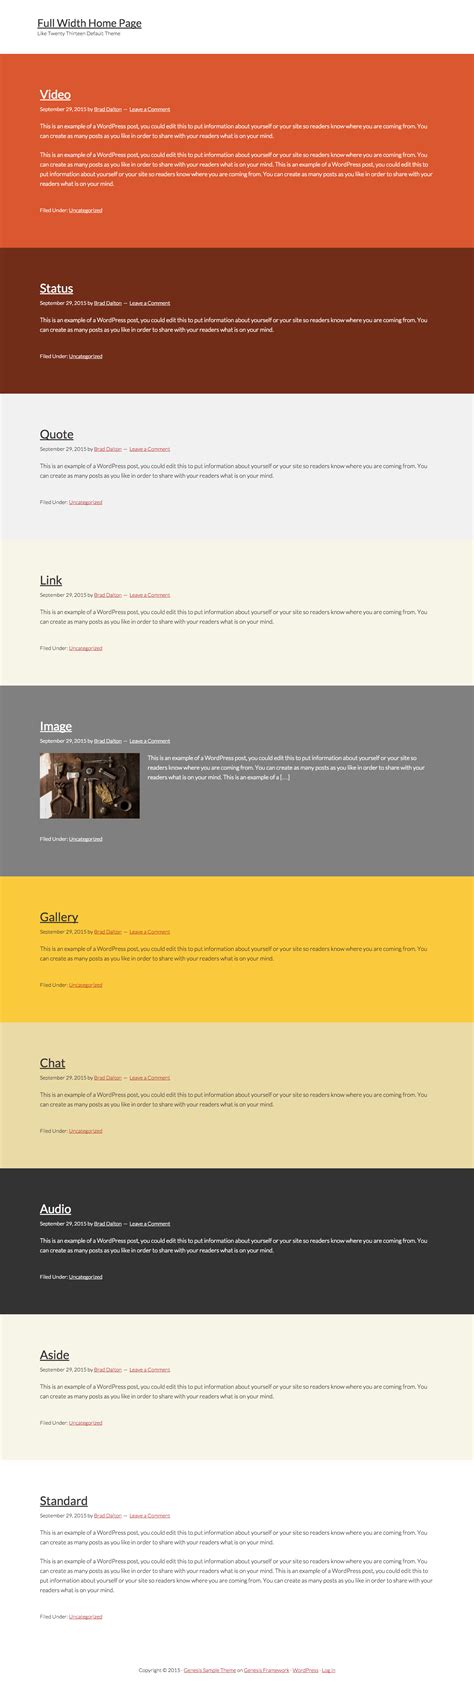 create new page template for blog in genesis theme with full width posts page template for genesis